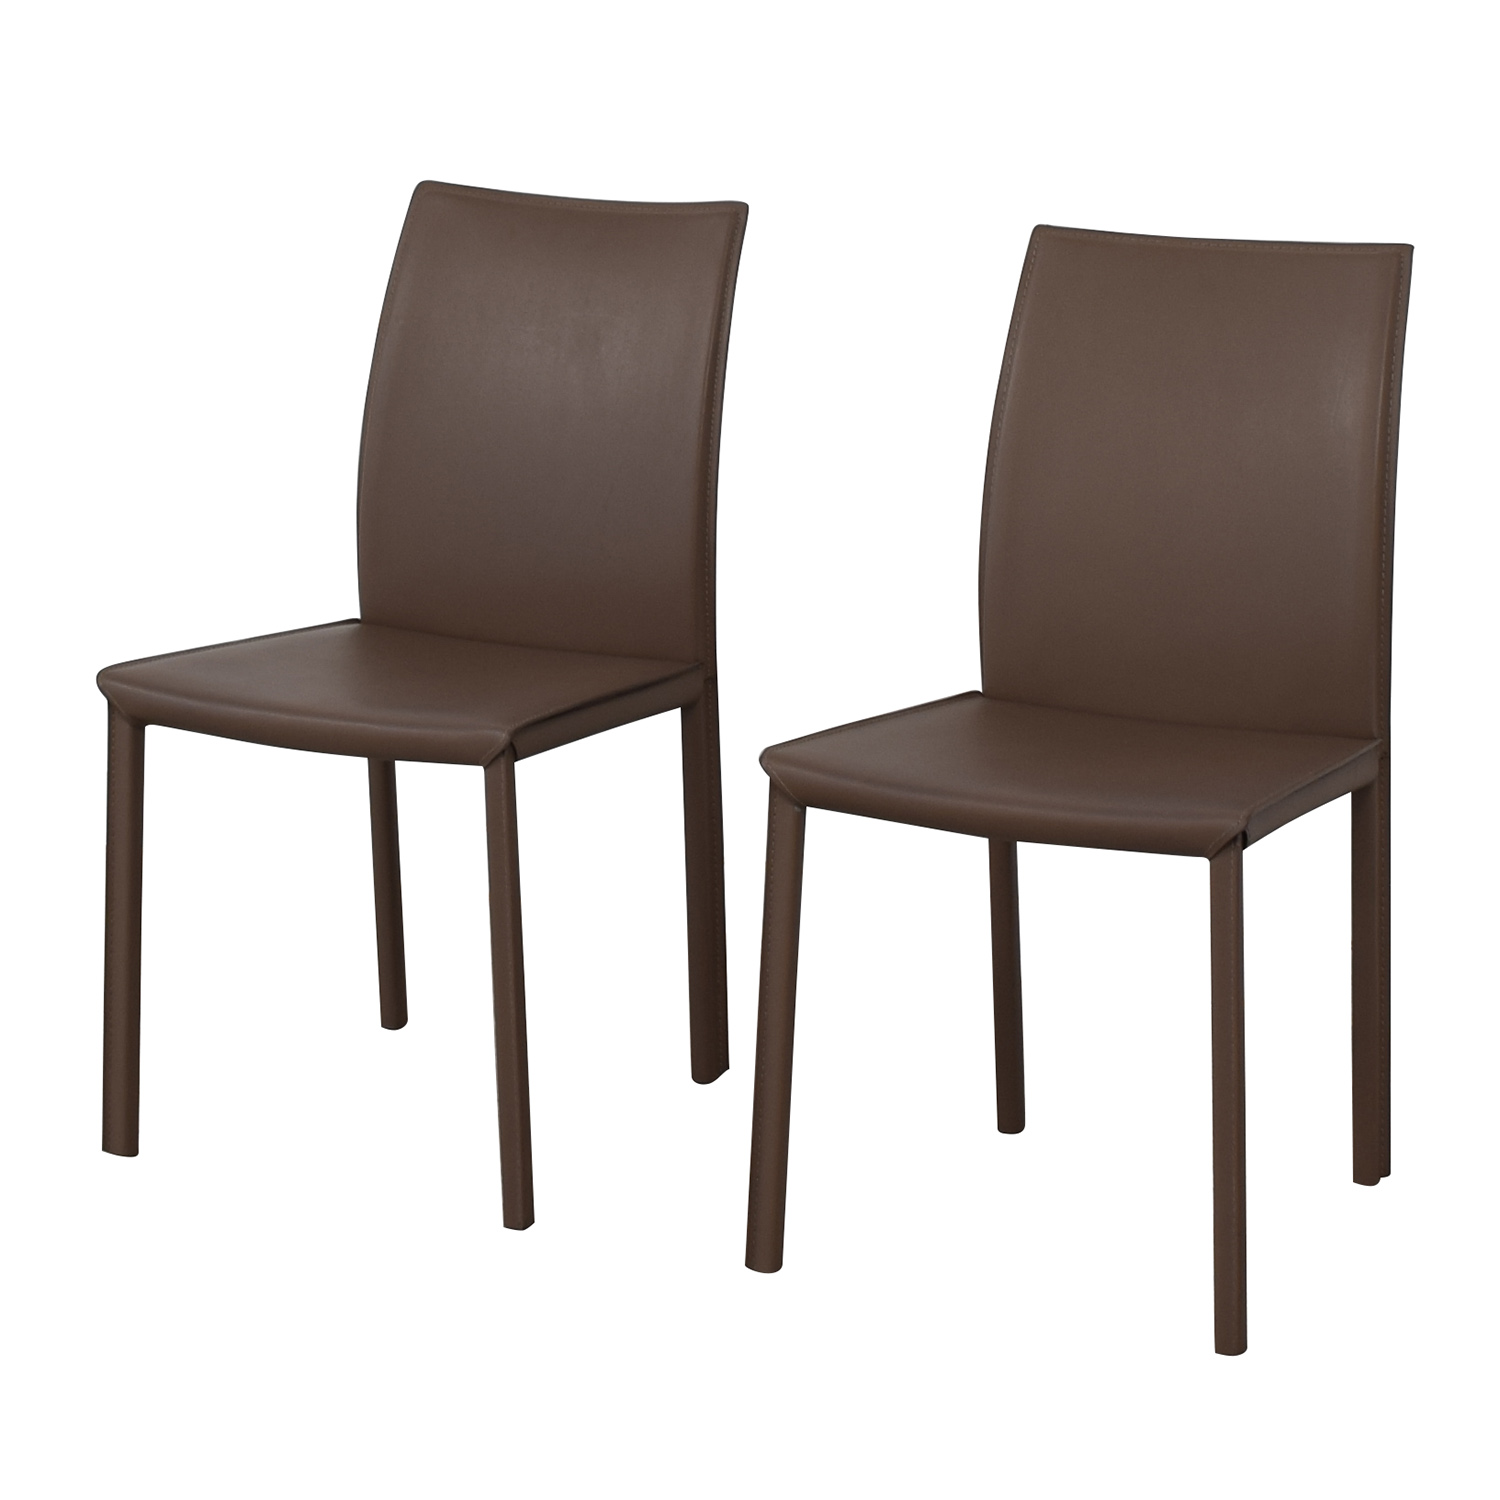 Wondrous 71 Off Boconcept Boconcept Zarra Dining Chairs Chairs Caraccident5 Cool Chair Designs And Ideas Caraccident5Info